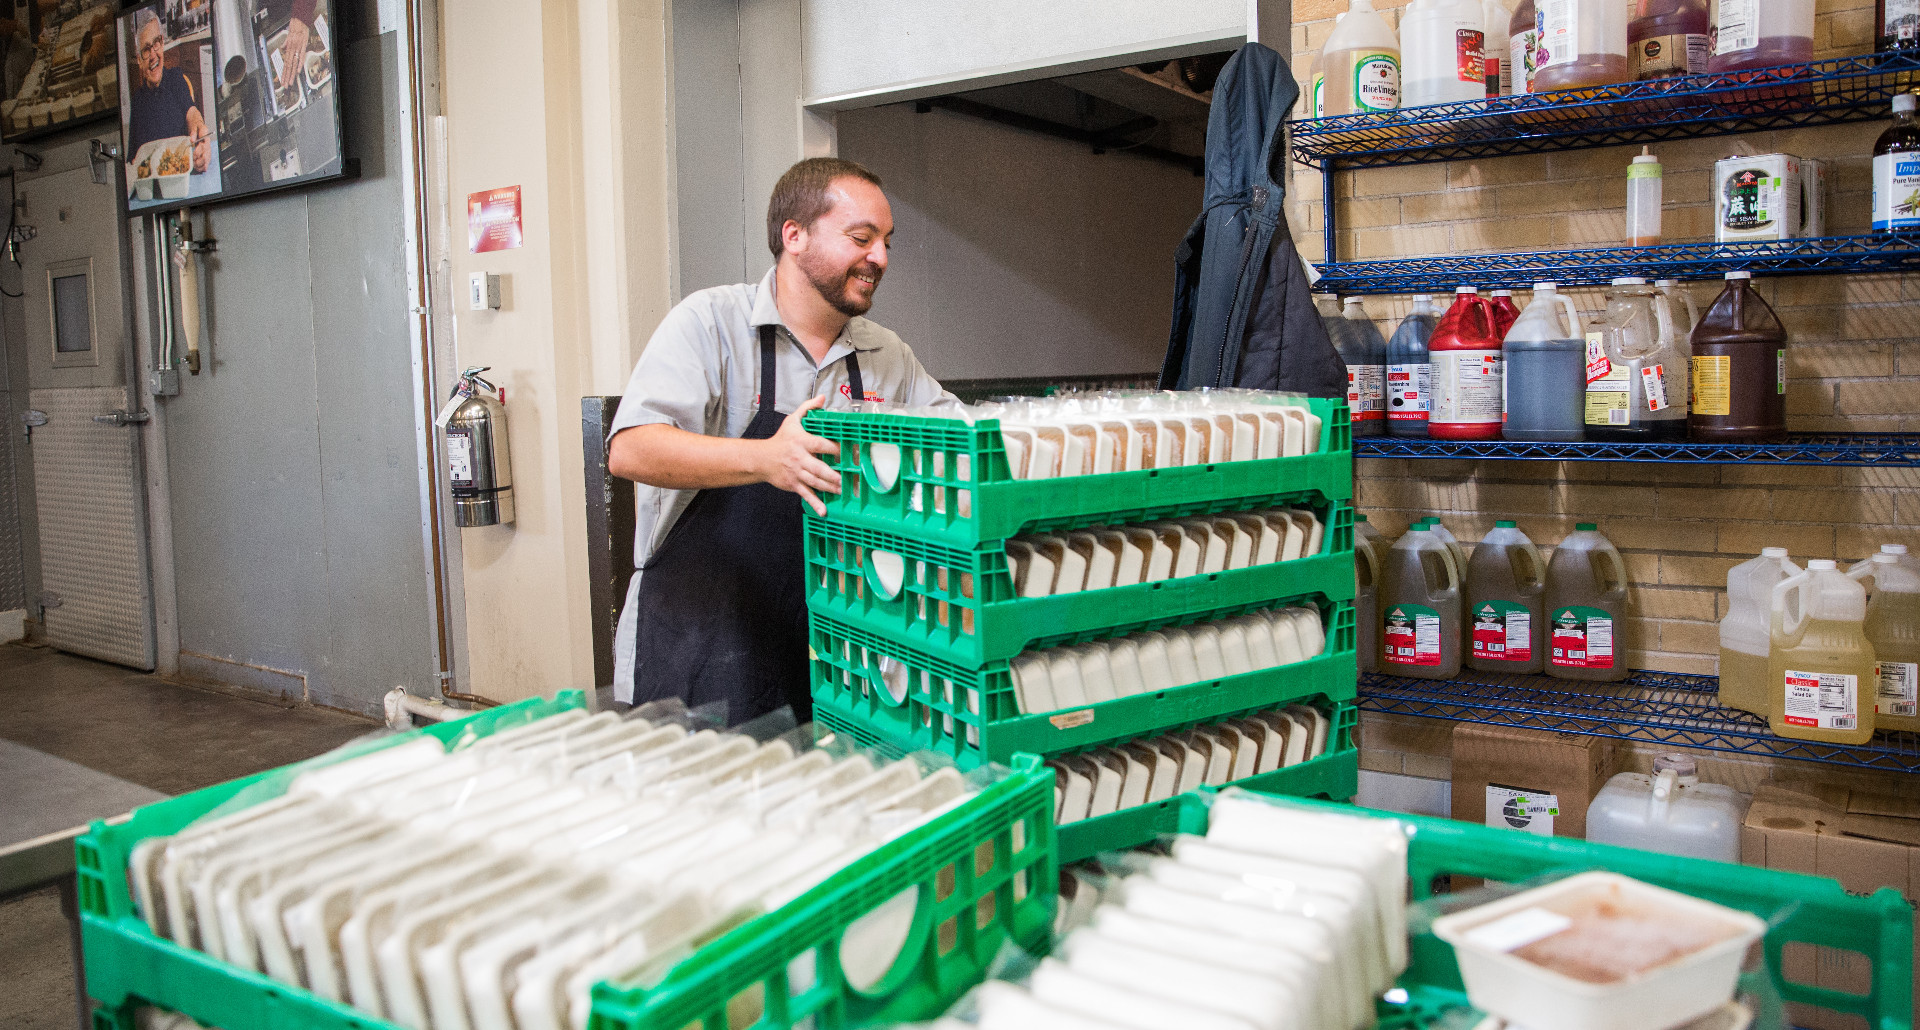 Chef stacking meals in meal trays